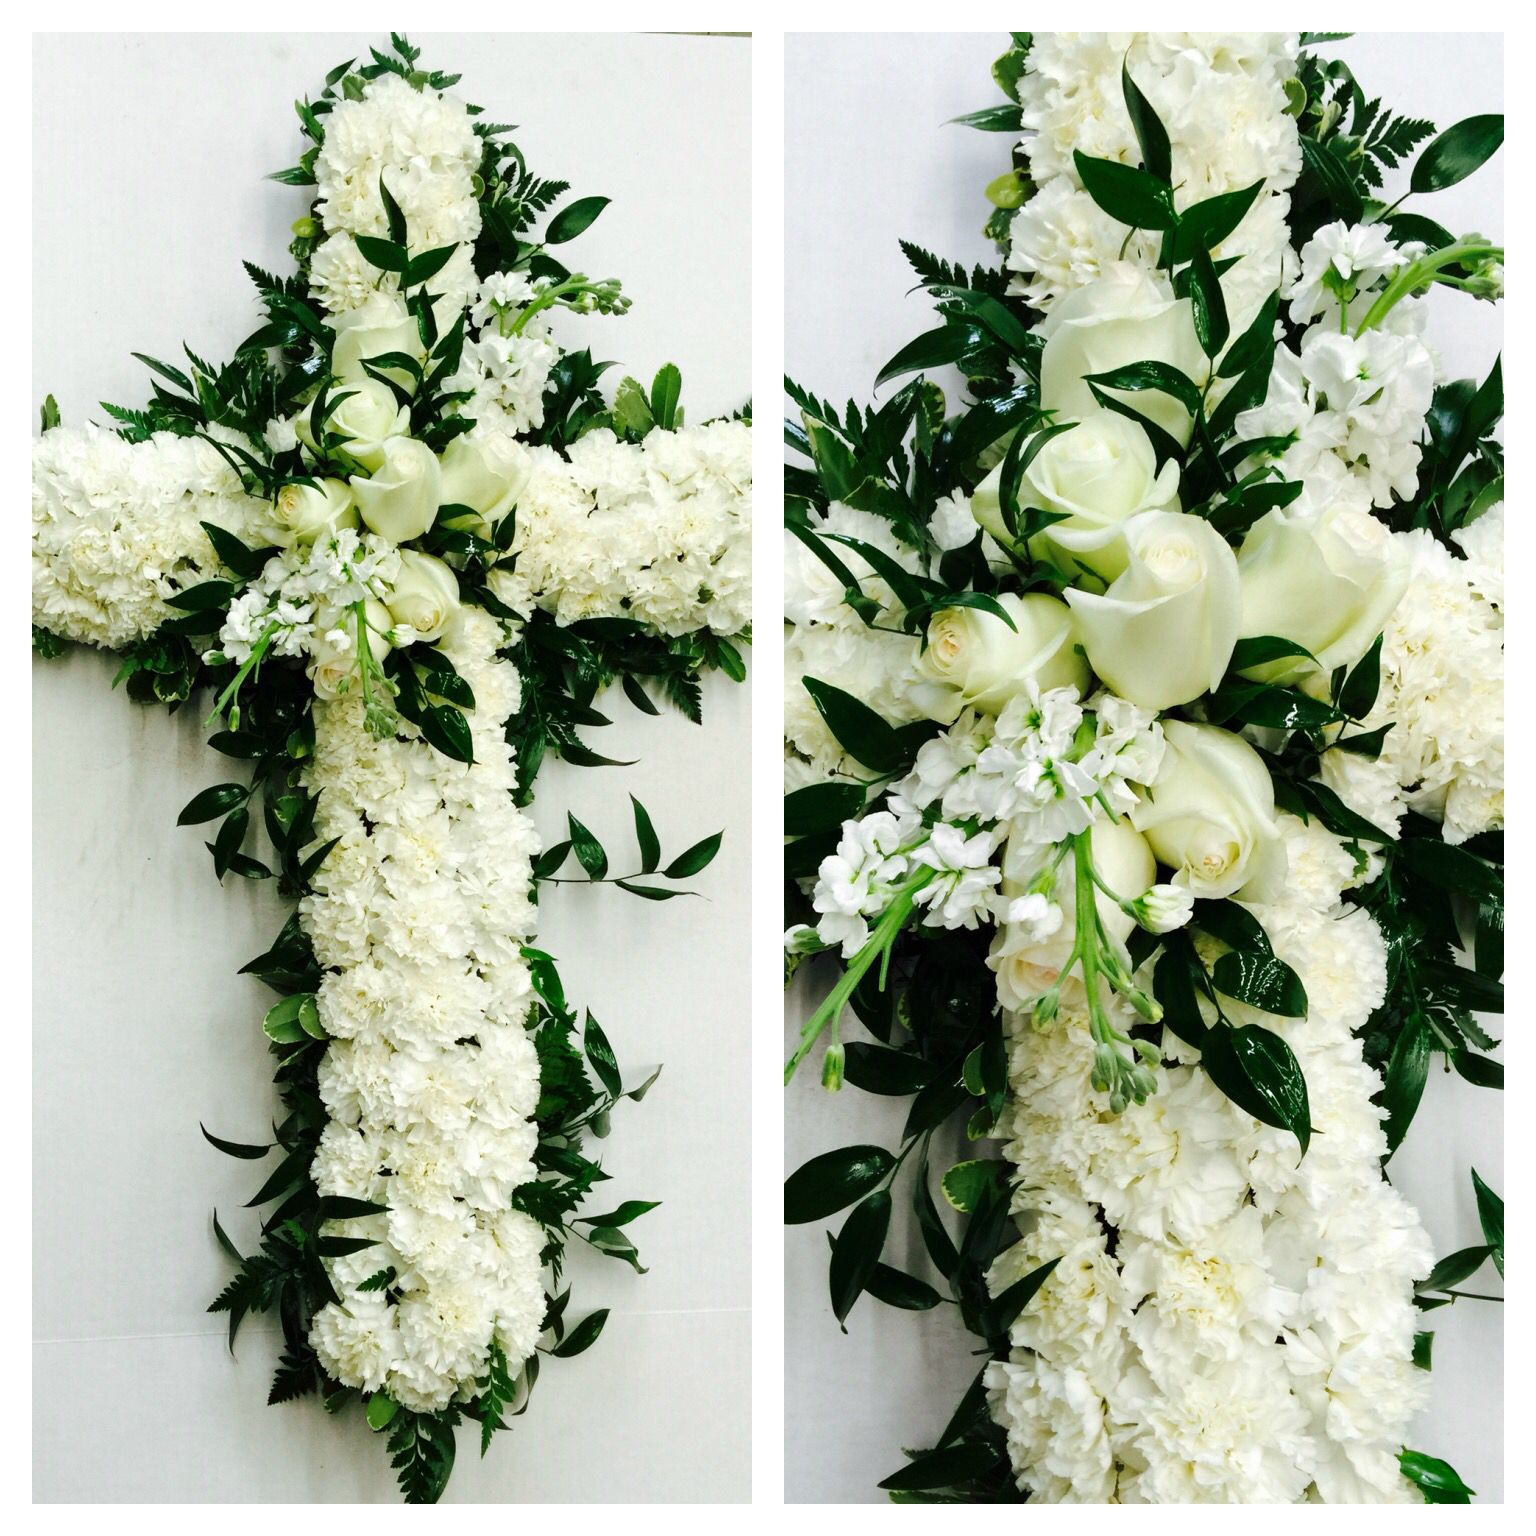 Classic all white sympathy cross for family service so beautiful classic all white sympathy cross for family service so beautiful izmirmasajfo